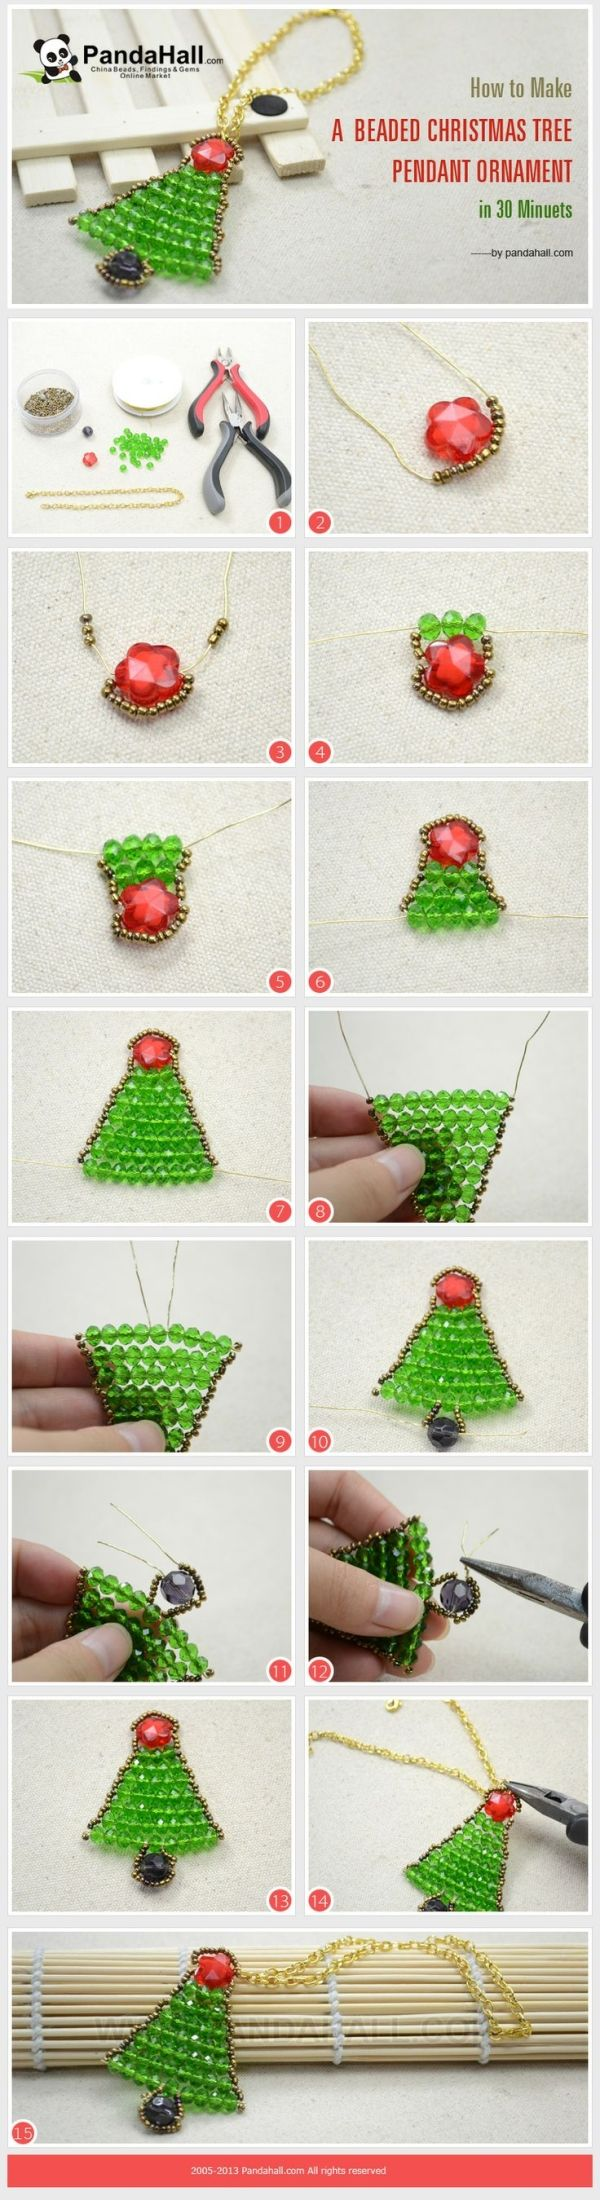 How to Make a Beaded Christmas Tree Pendant ...   Jewelry Making Tuto�� by wanting